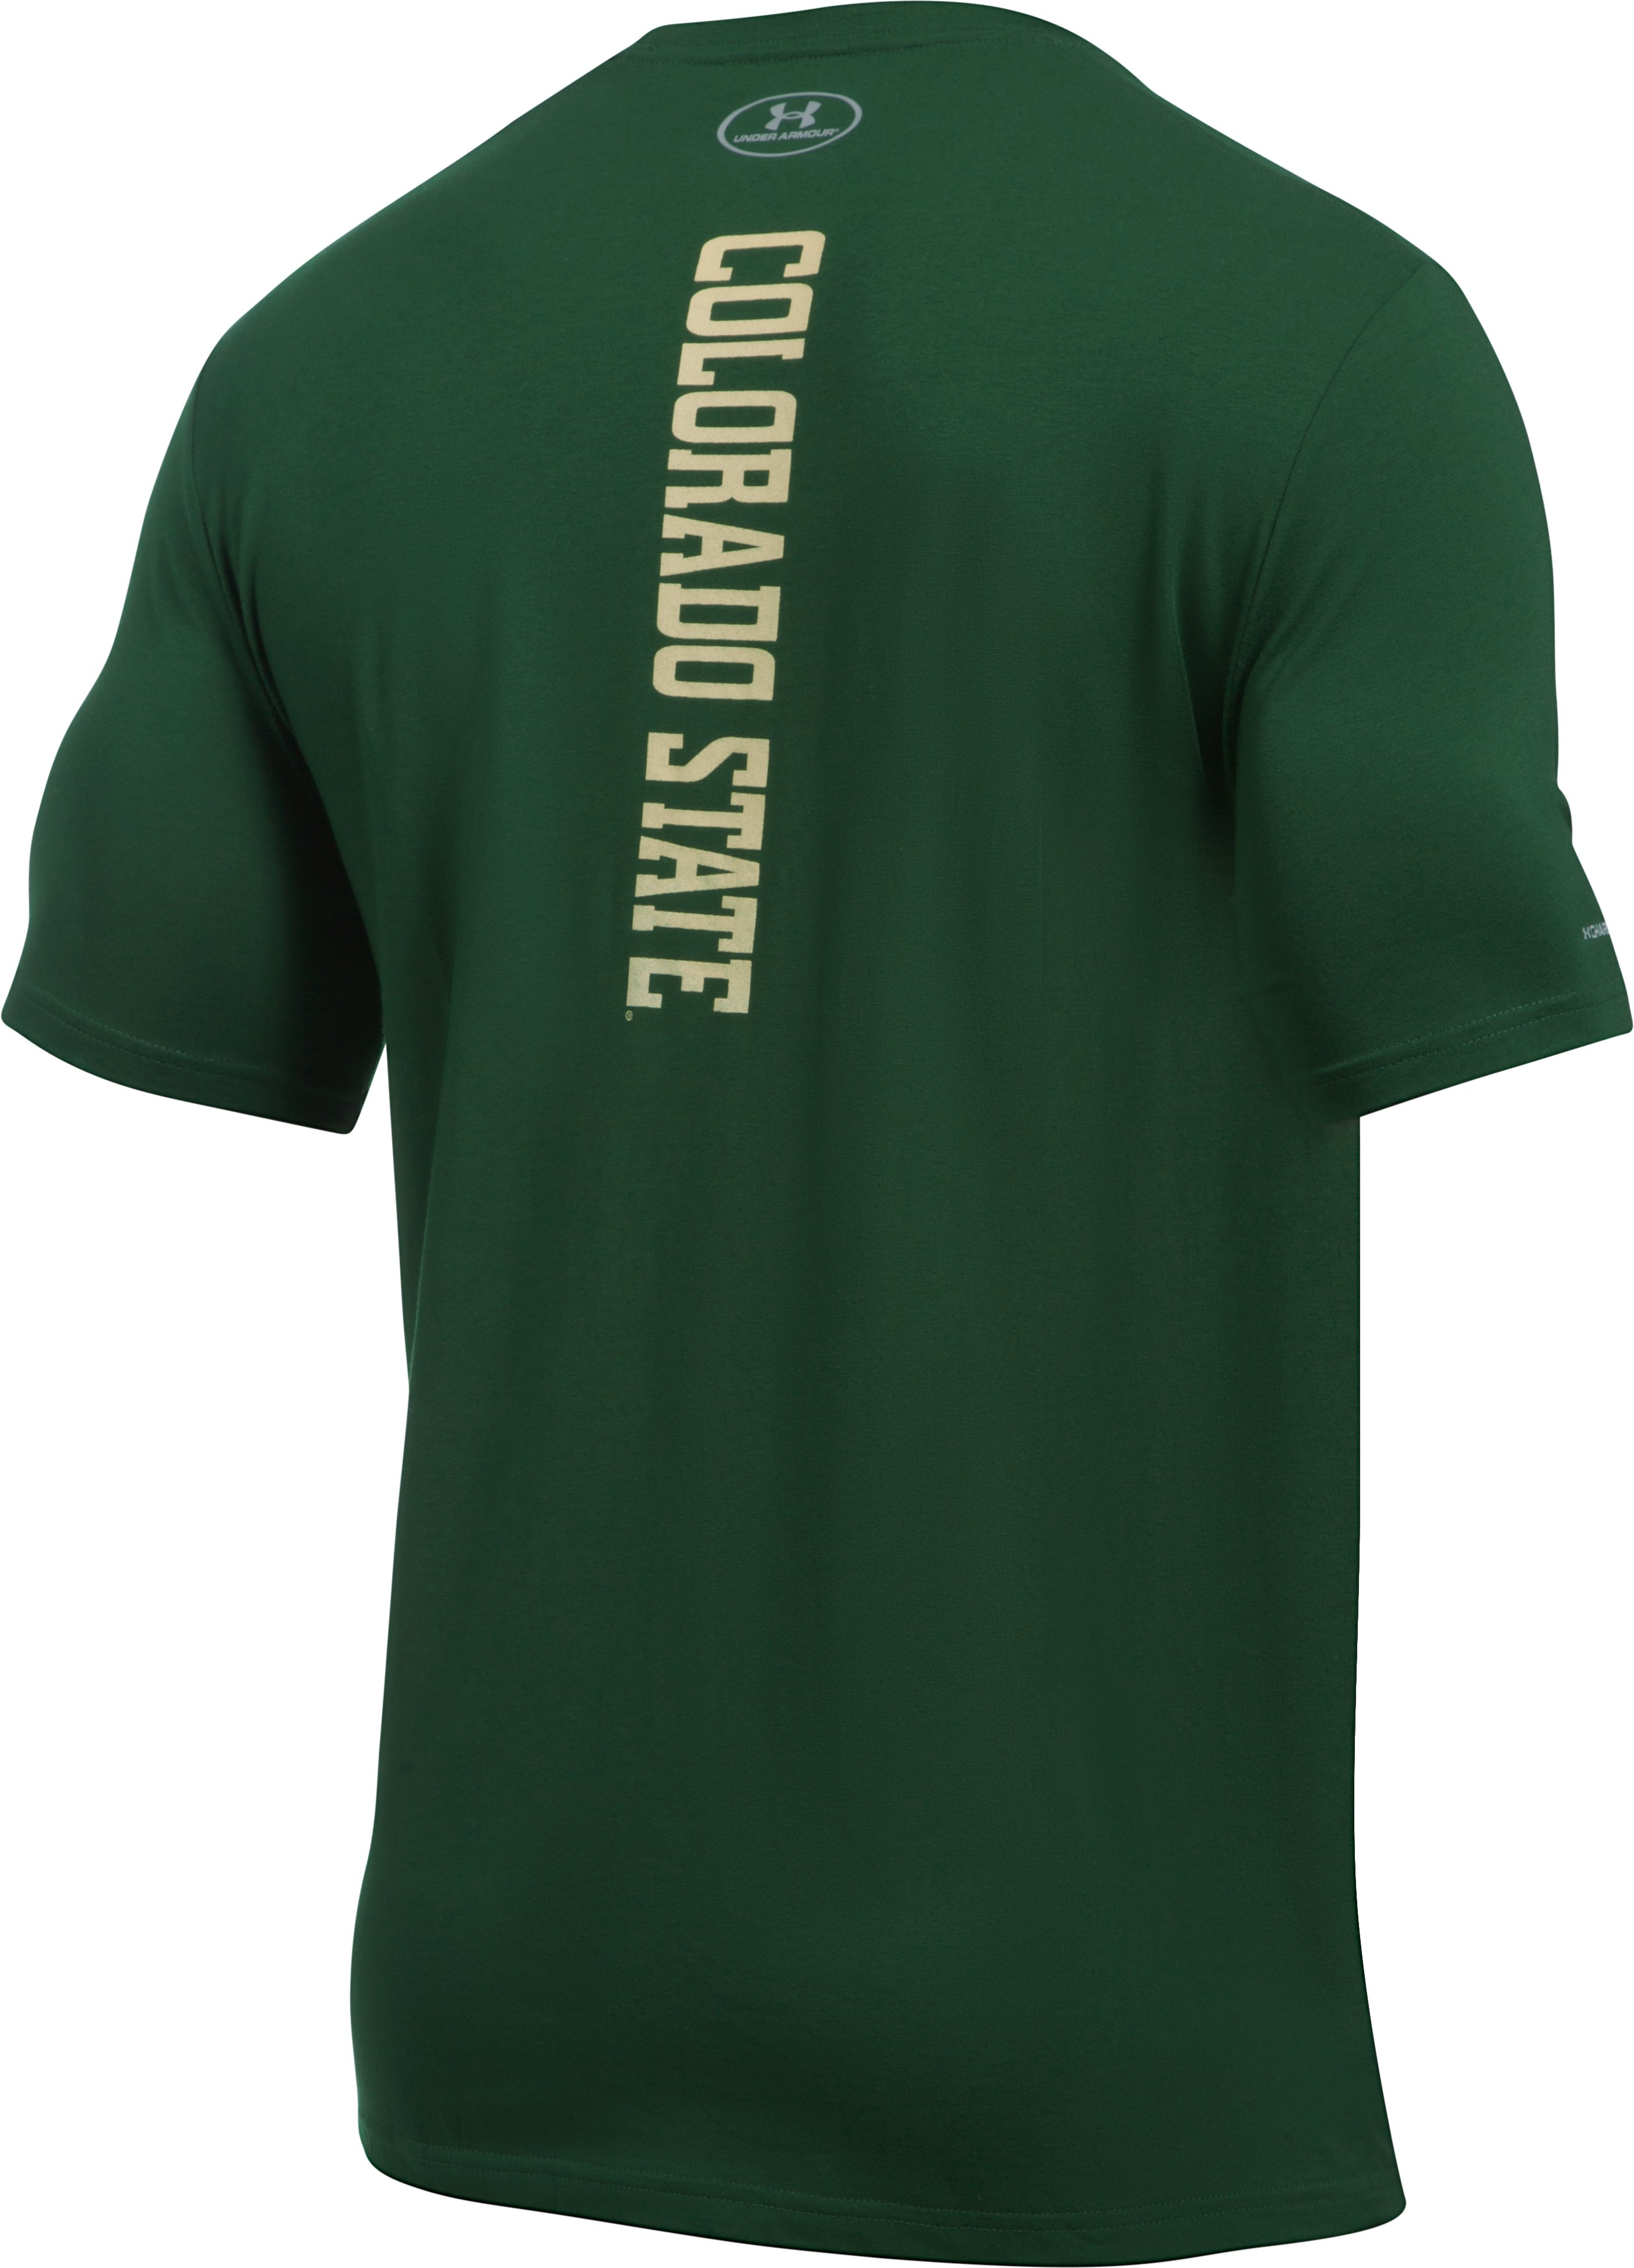 Men's CSU Charged Cotton® T-Shirt, Forest Green